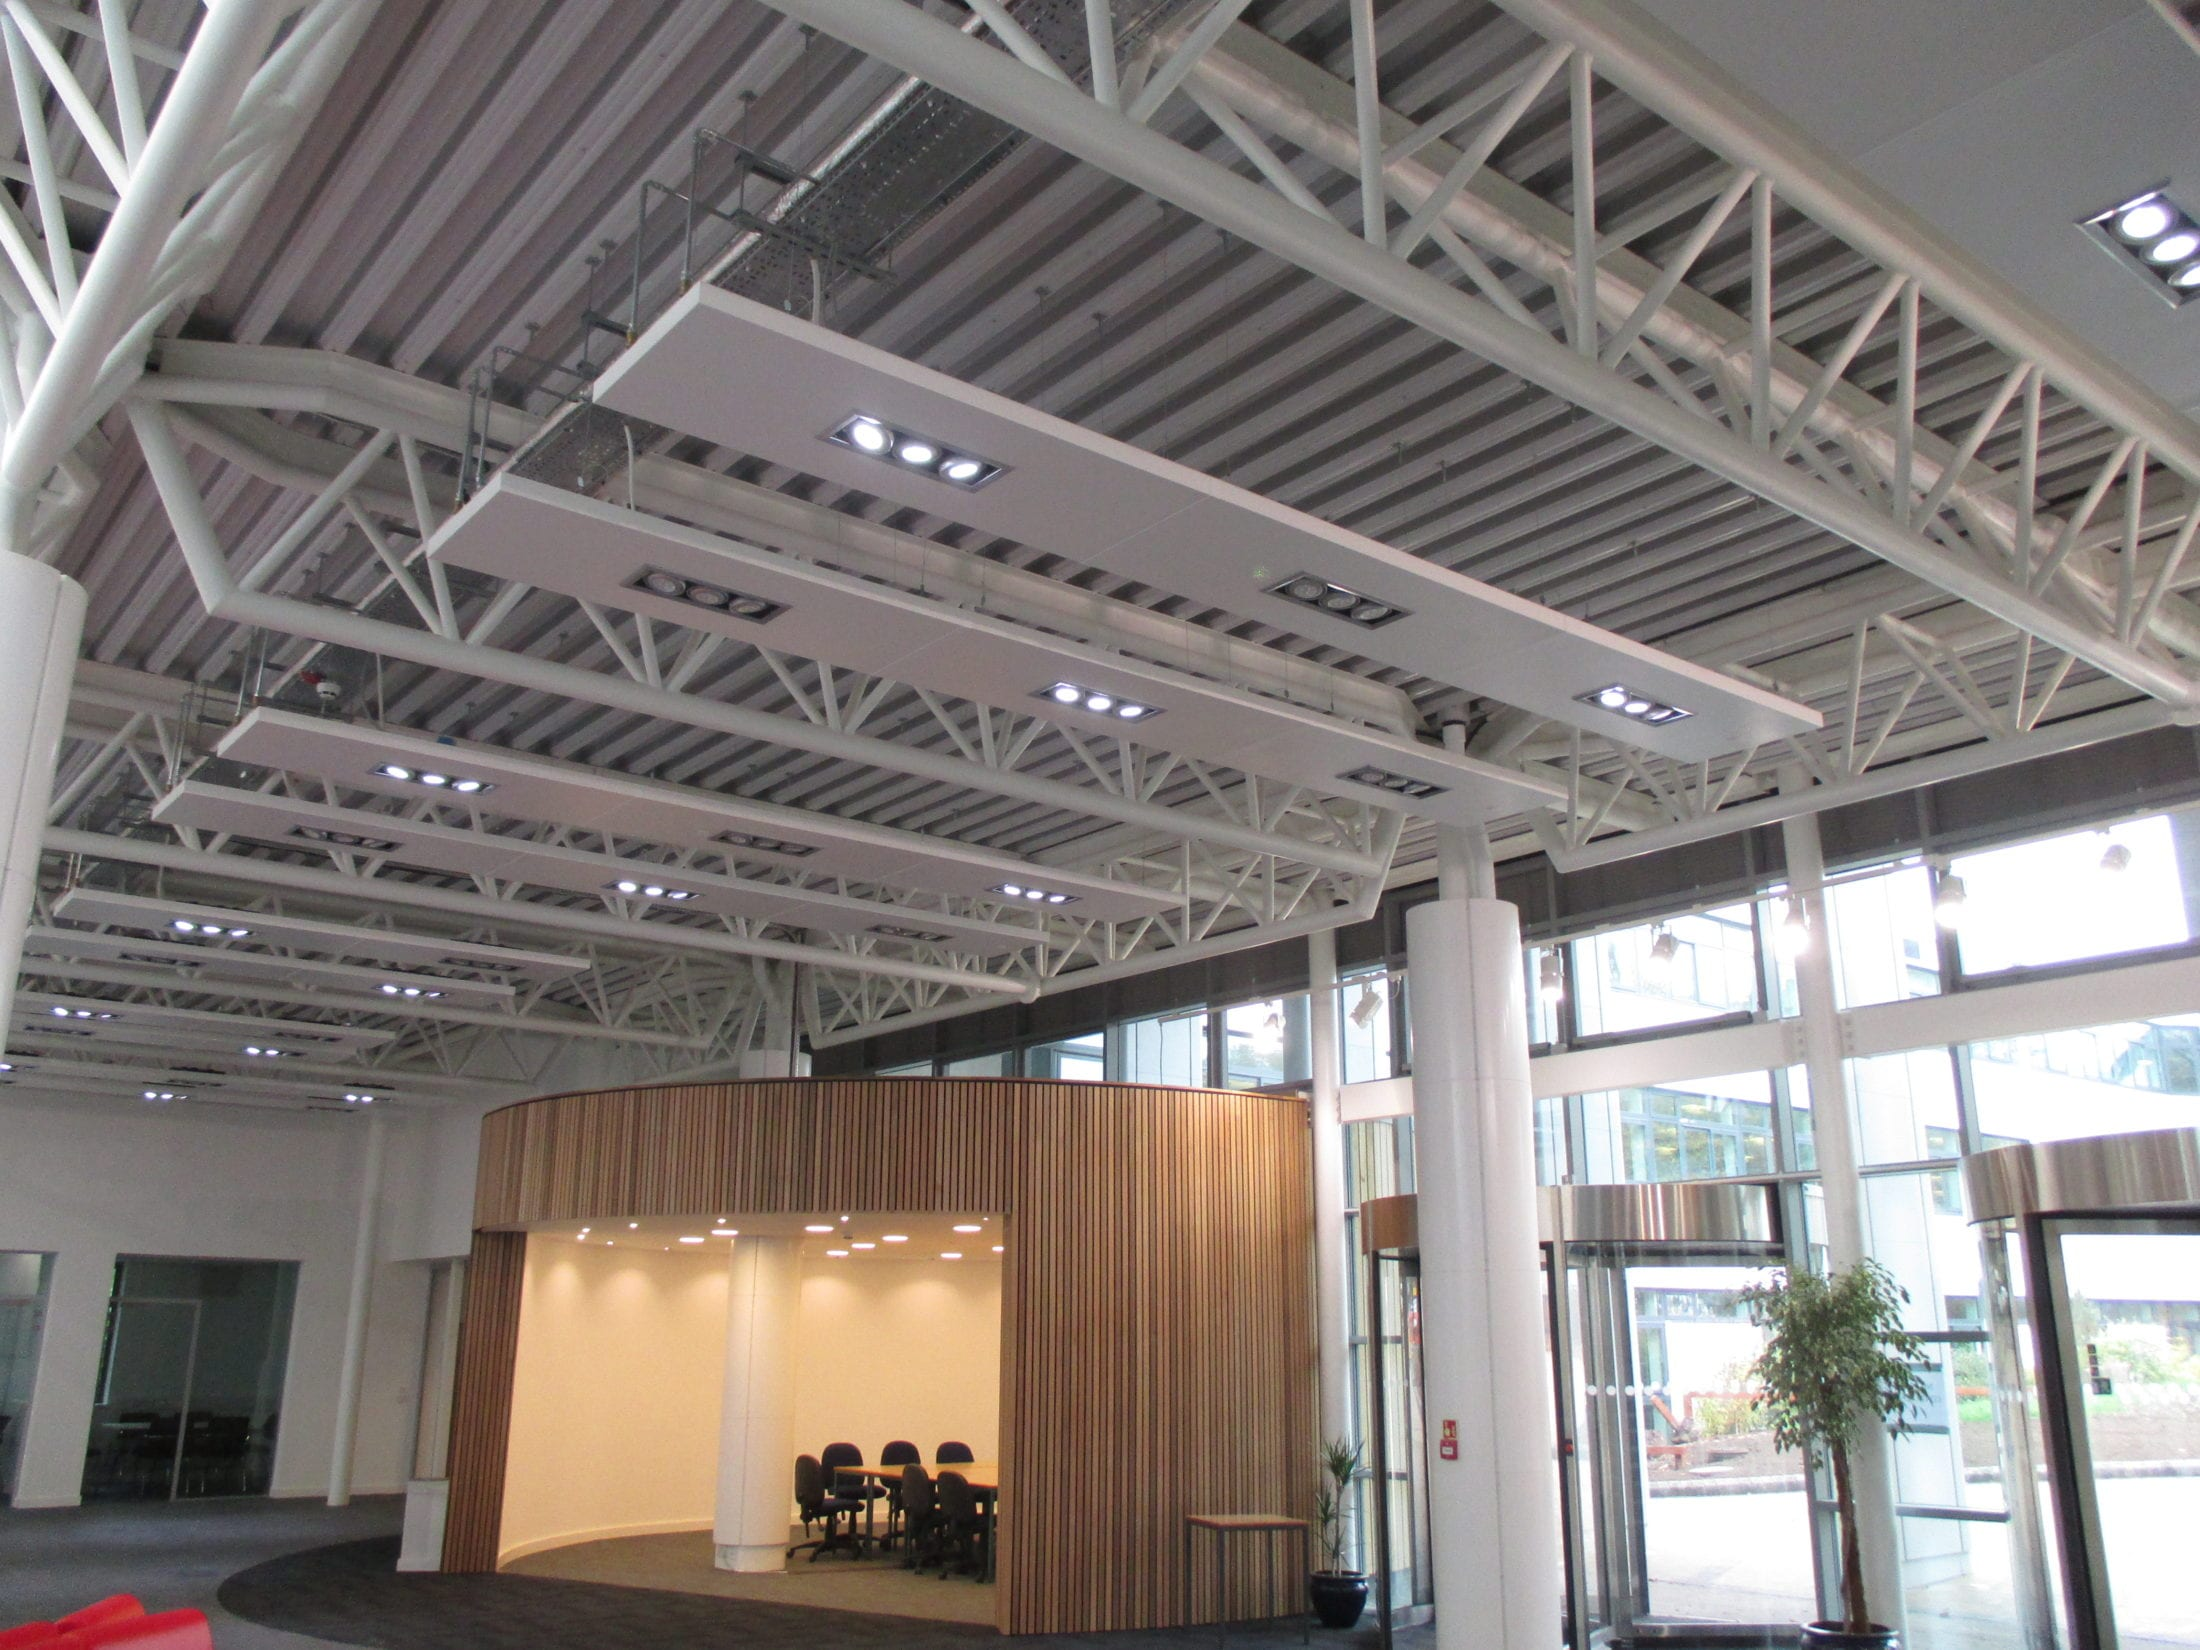 radiant ceilings service ceiling heating lighting solray warwickshire bespoke college panels rafts cost multi